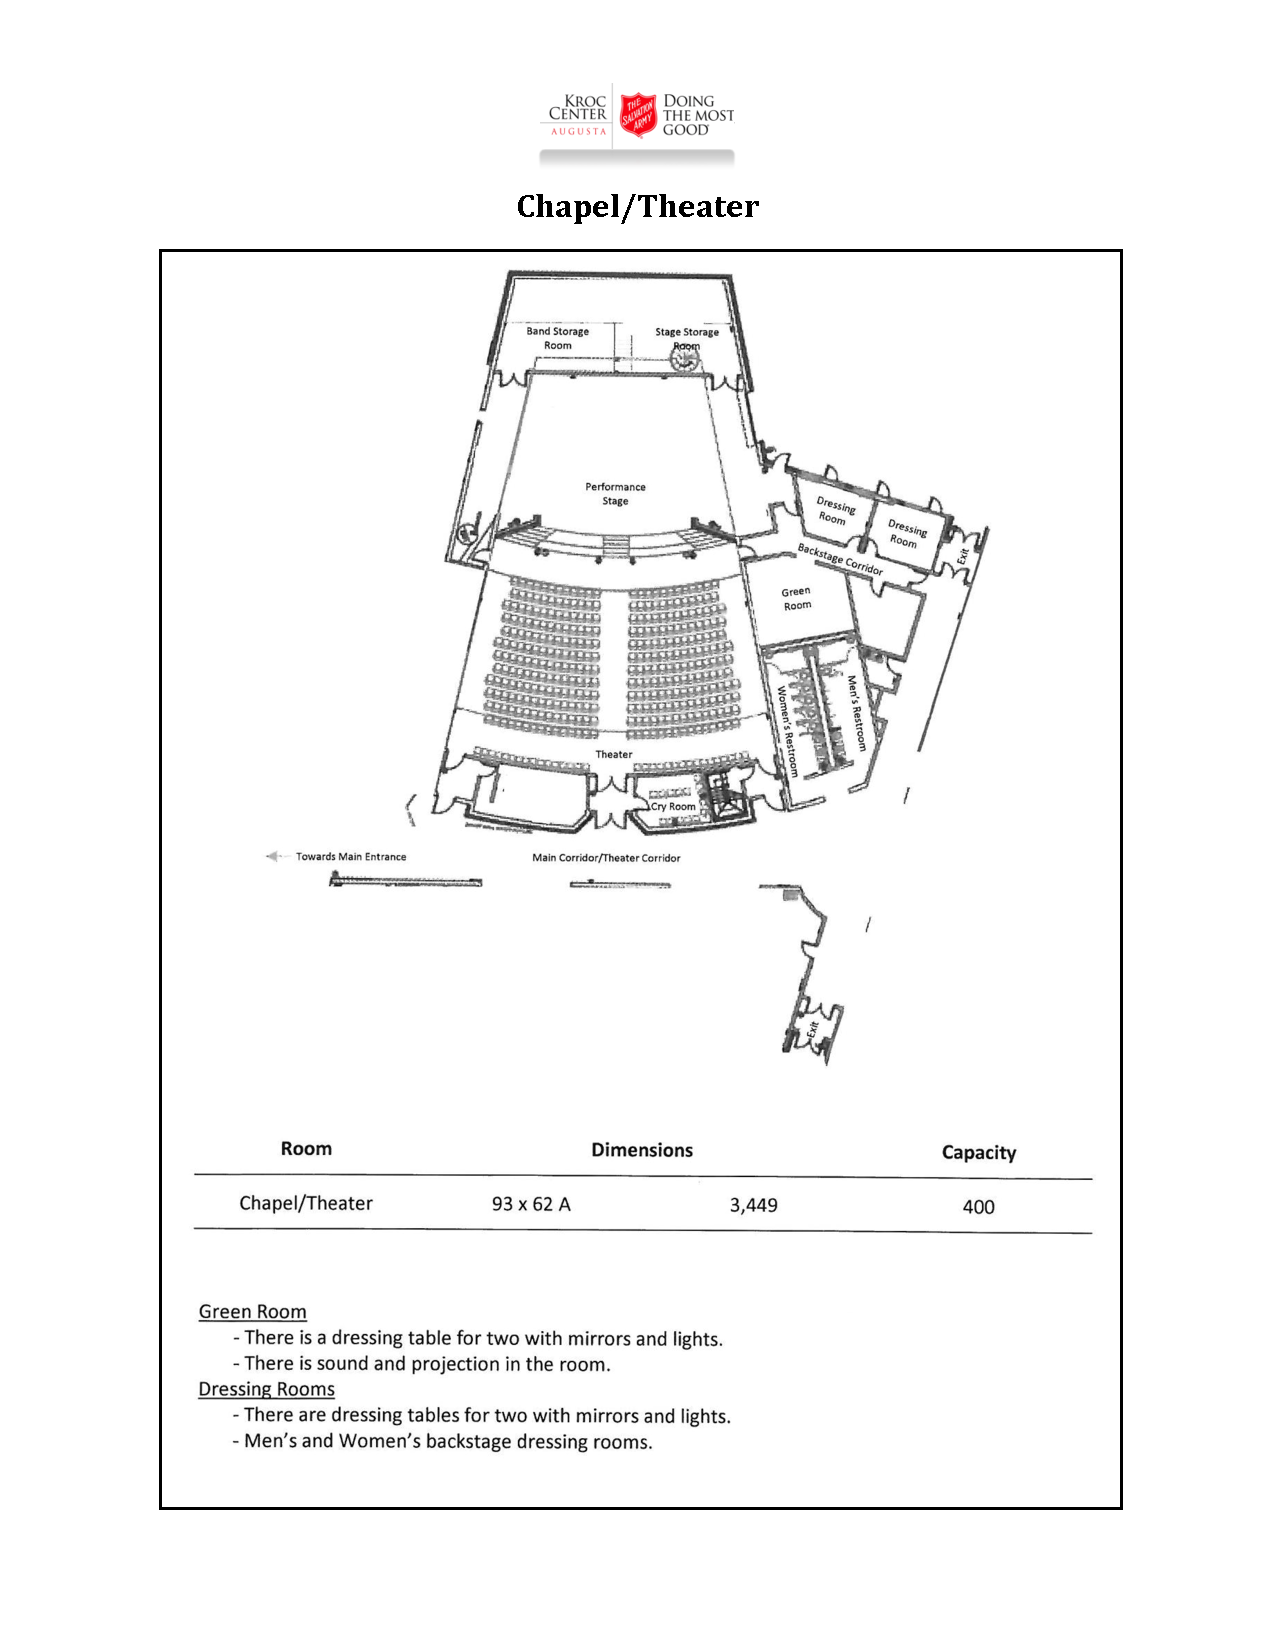 floor plan template for theatre | Floor-Plan-Chapel-Theater-for